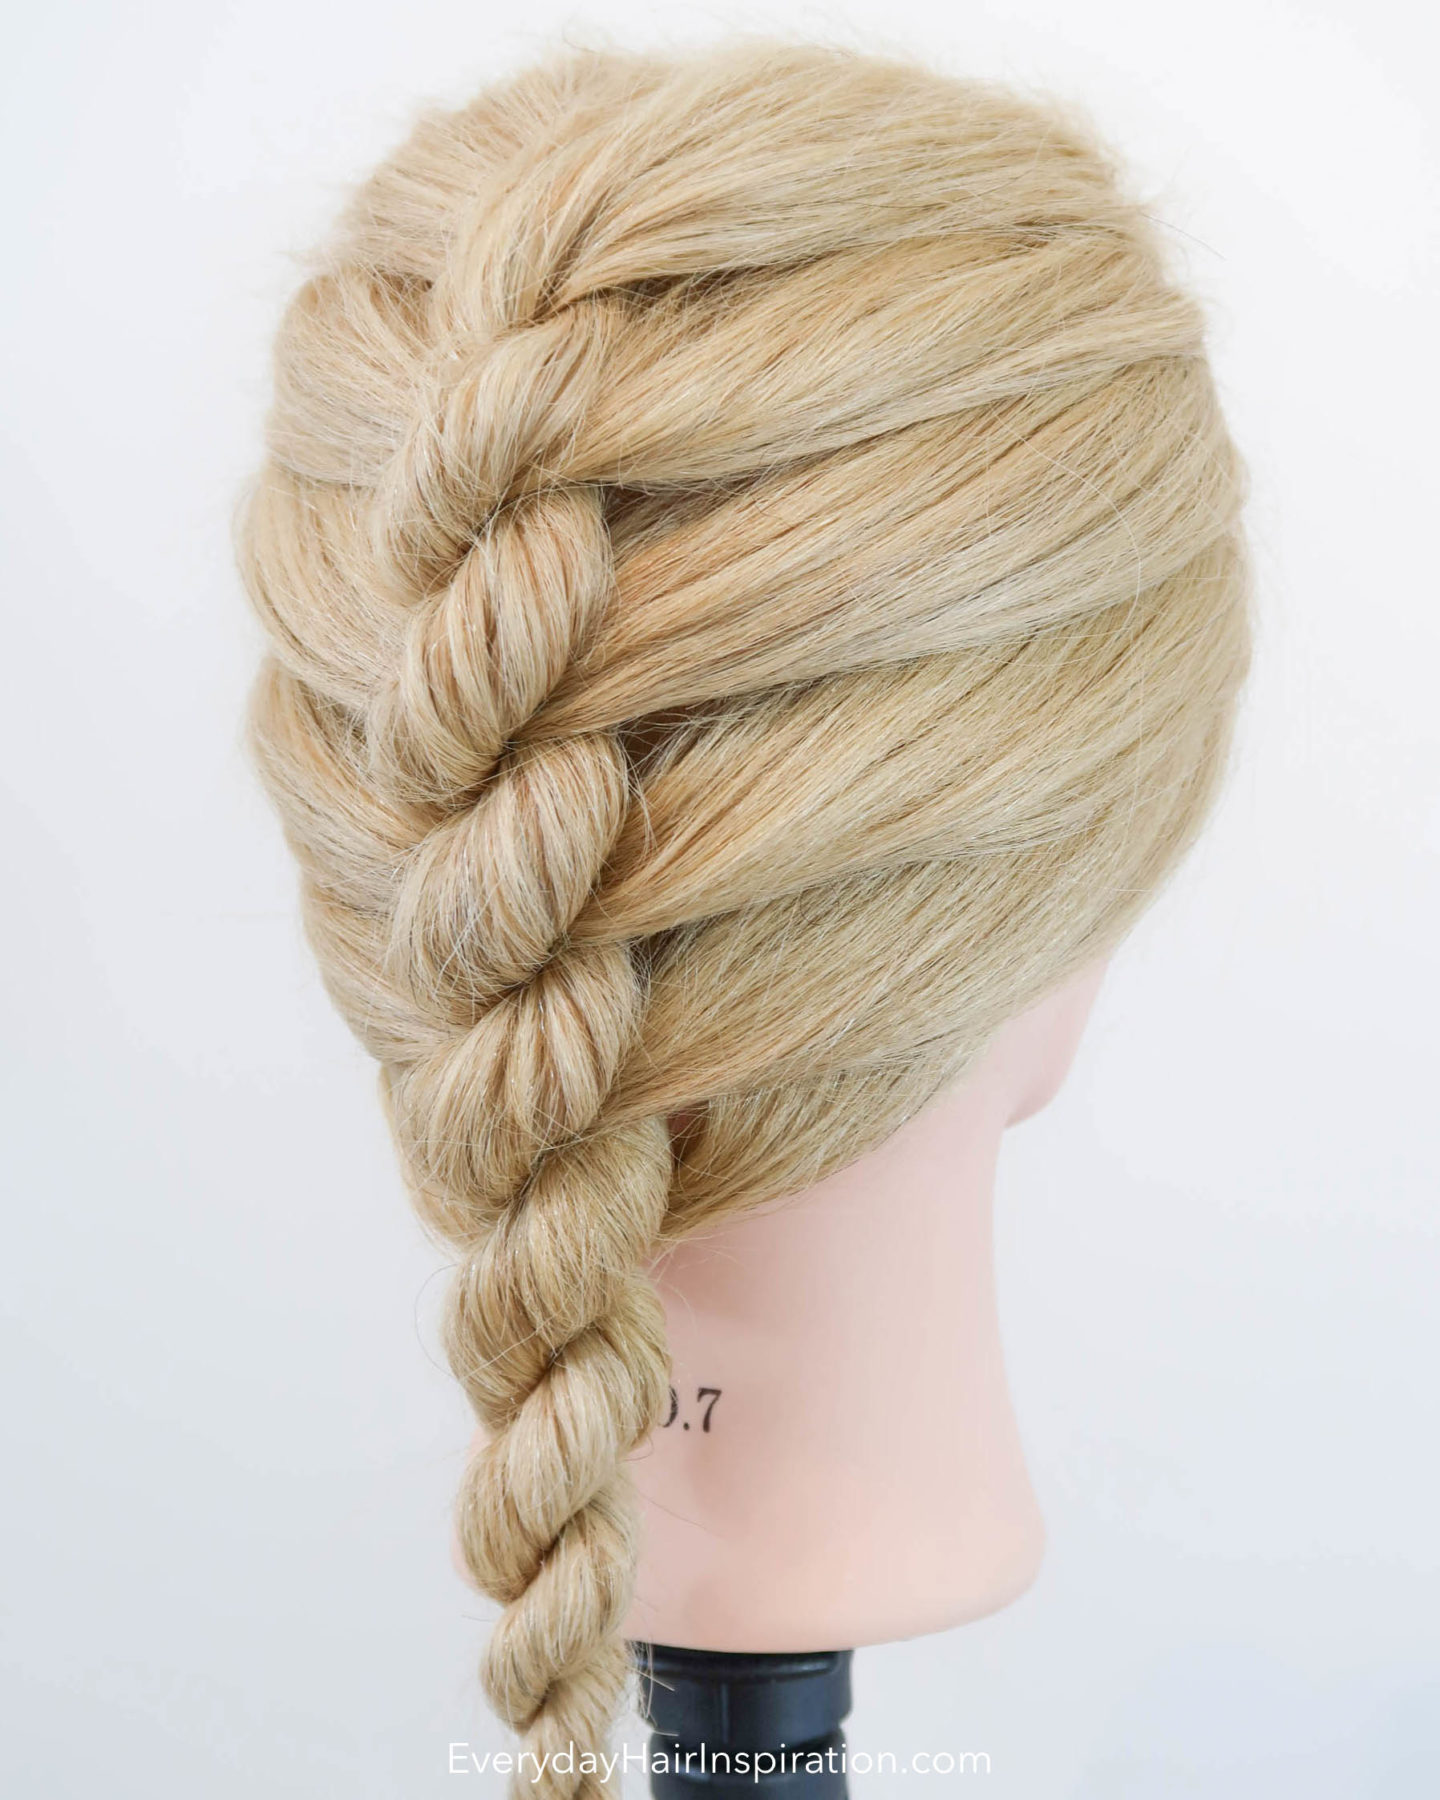 Blonde hairdresser doll with a single french rope braid in the hair - looking at the braid from a side angle.